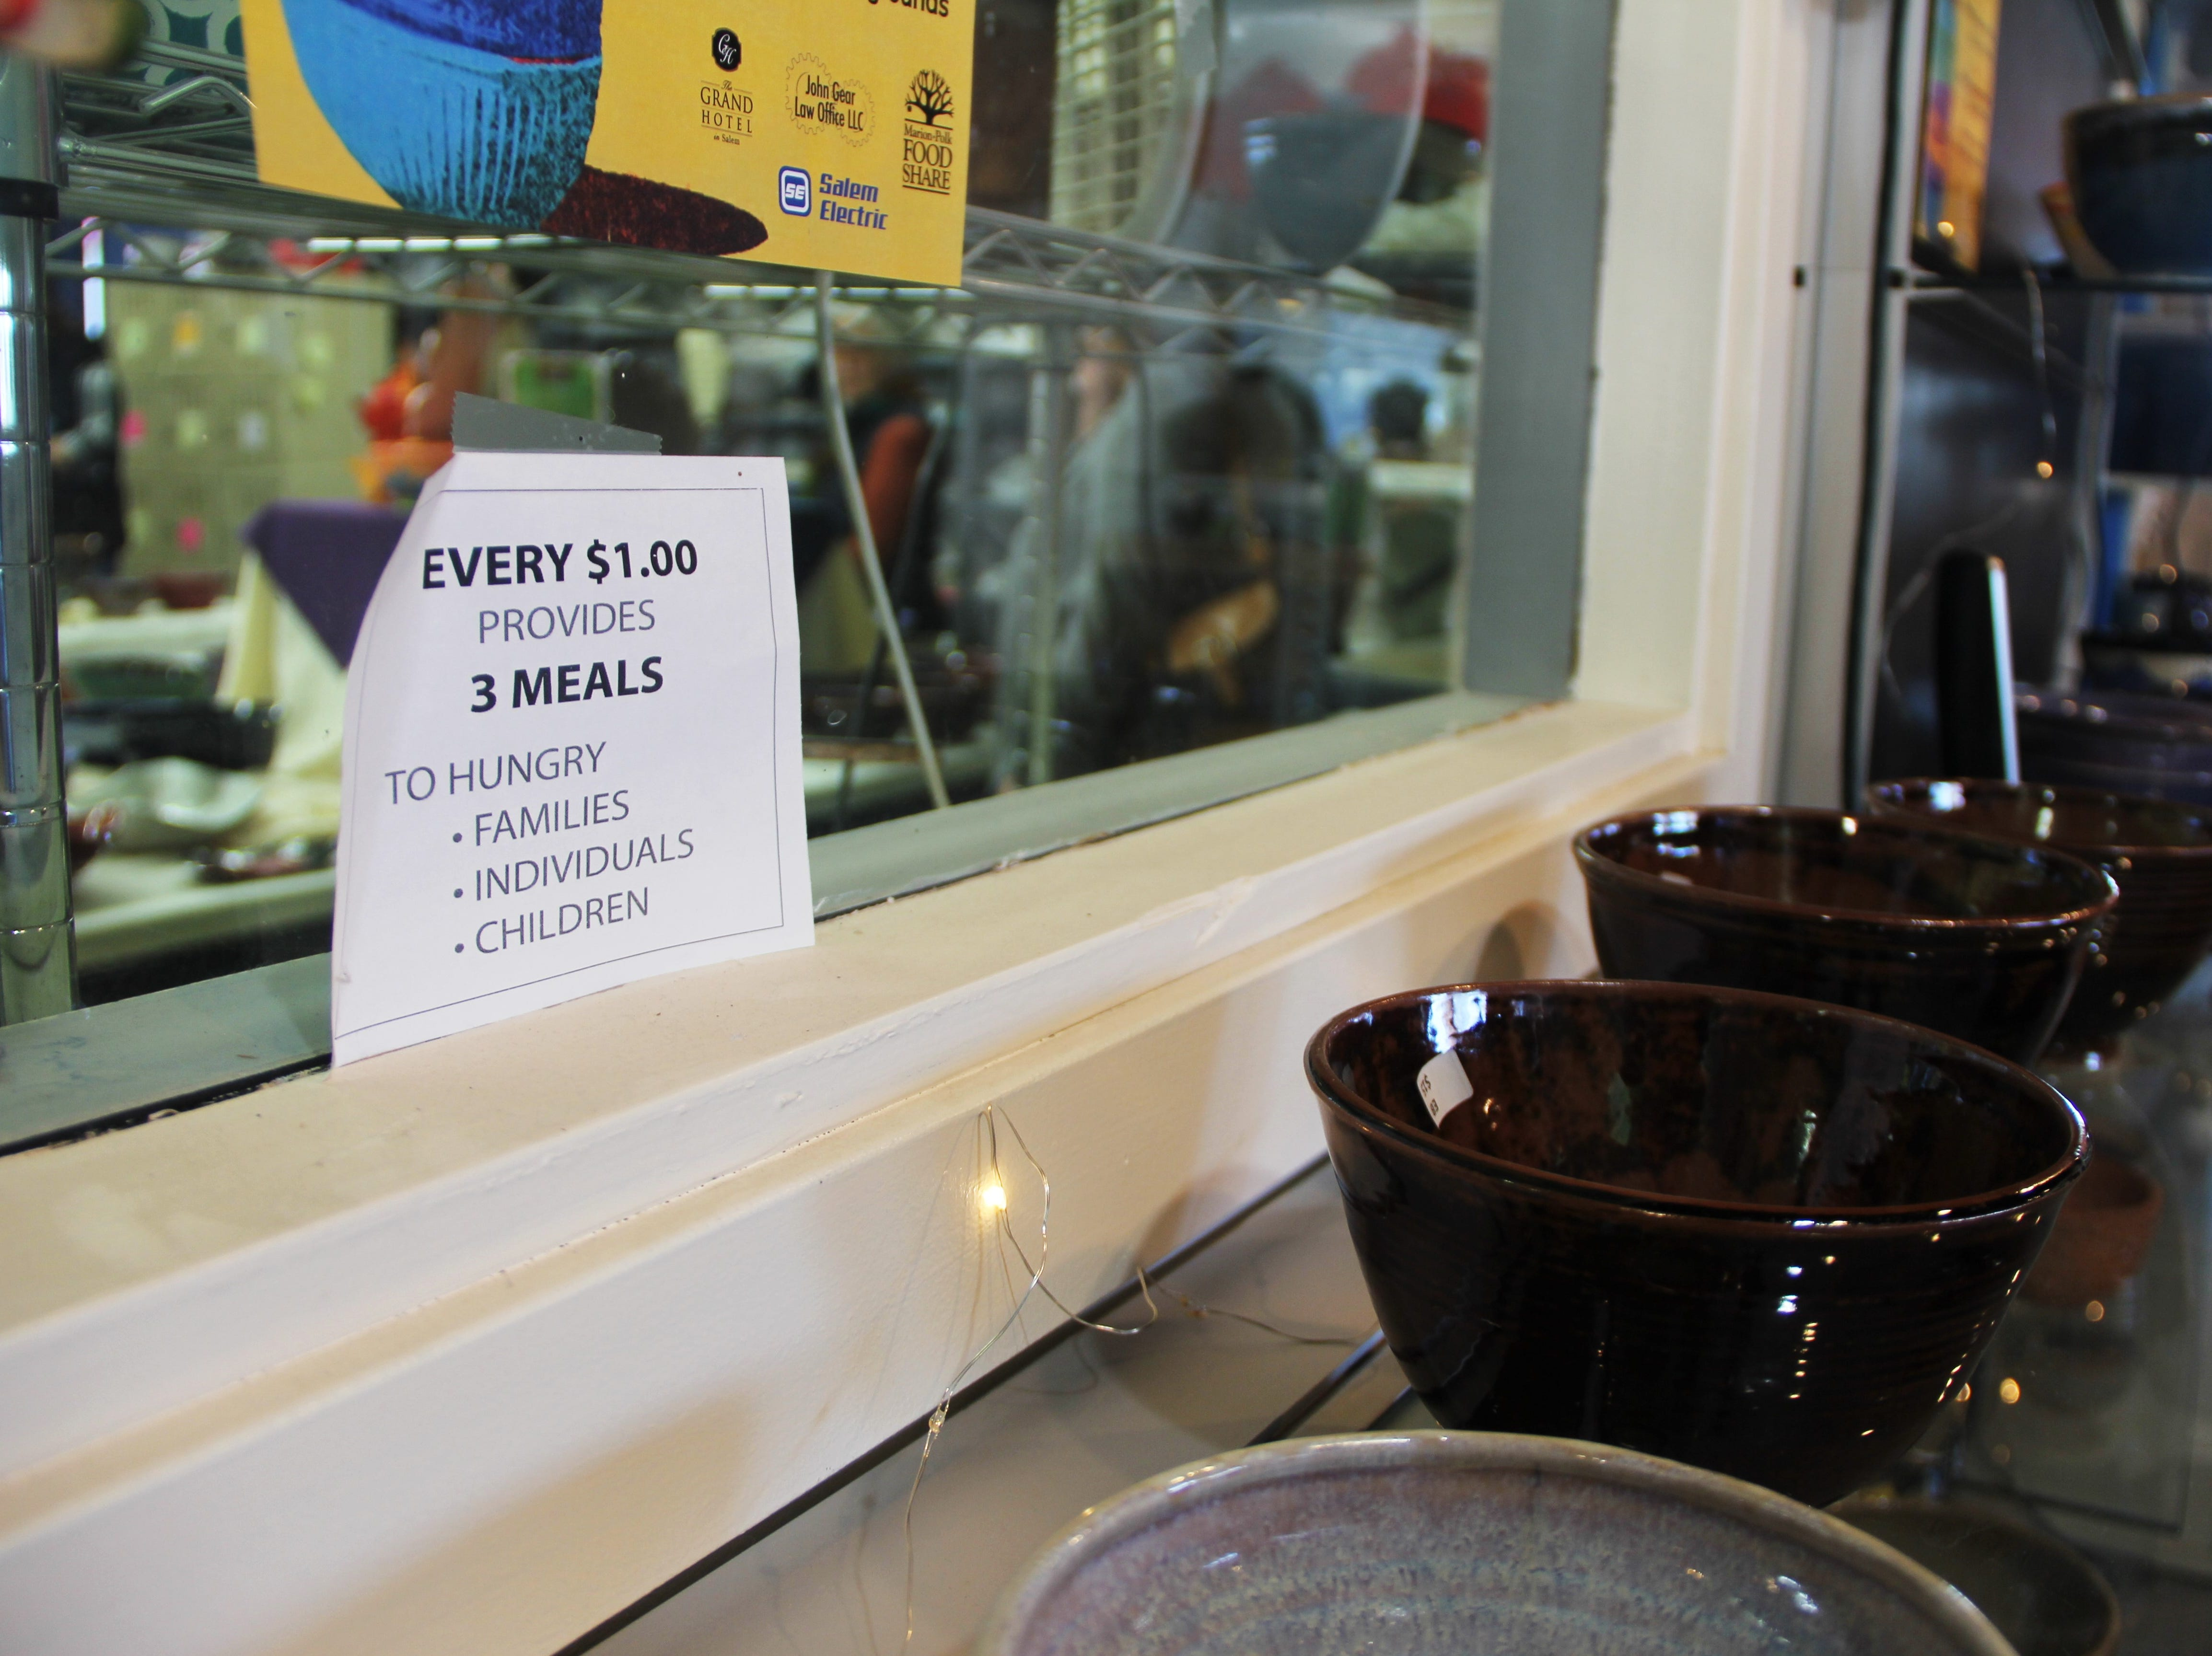 A sign photographed on Saturday, Nov. 17, explains how every dollar spent at the Willamette Art Center's Empty Bowls fundraiser provides three meals for members of the community.